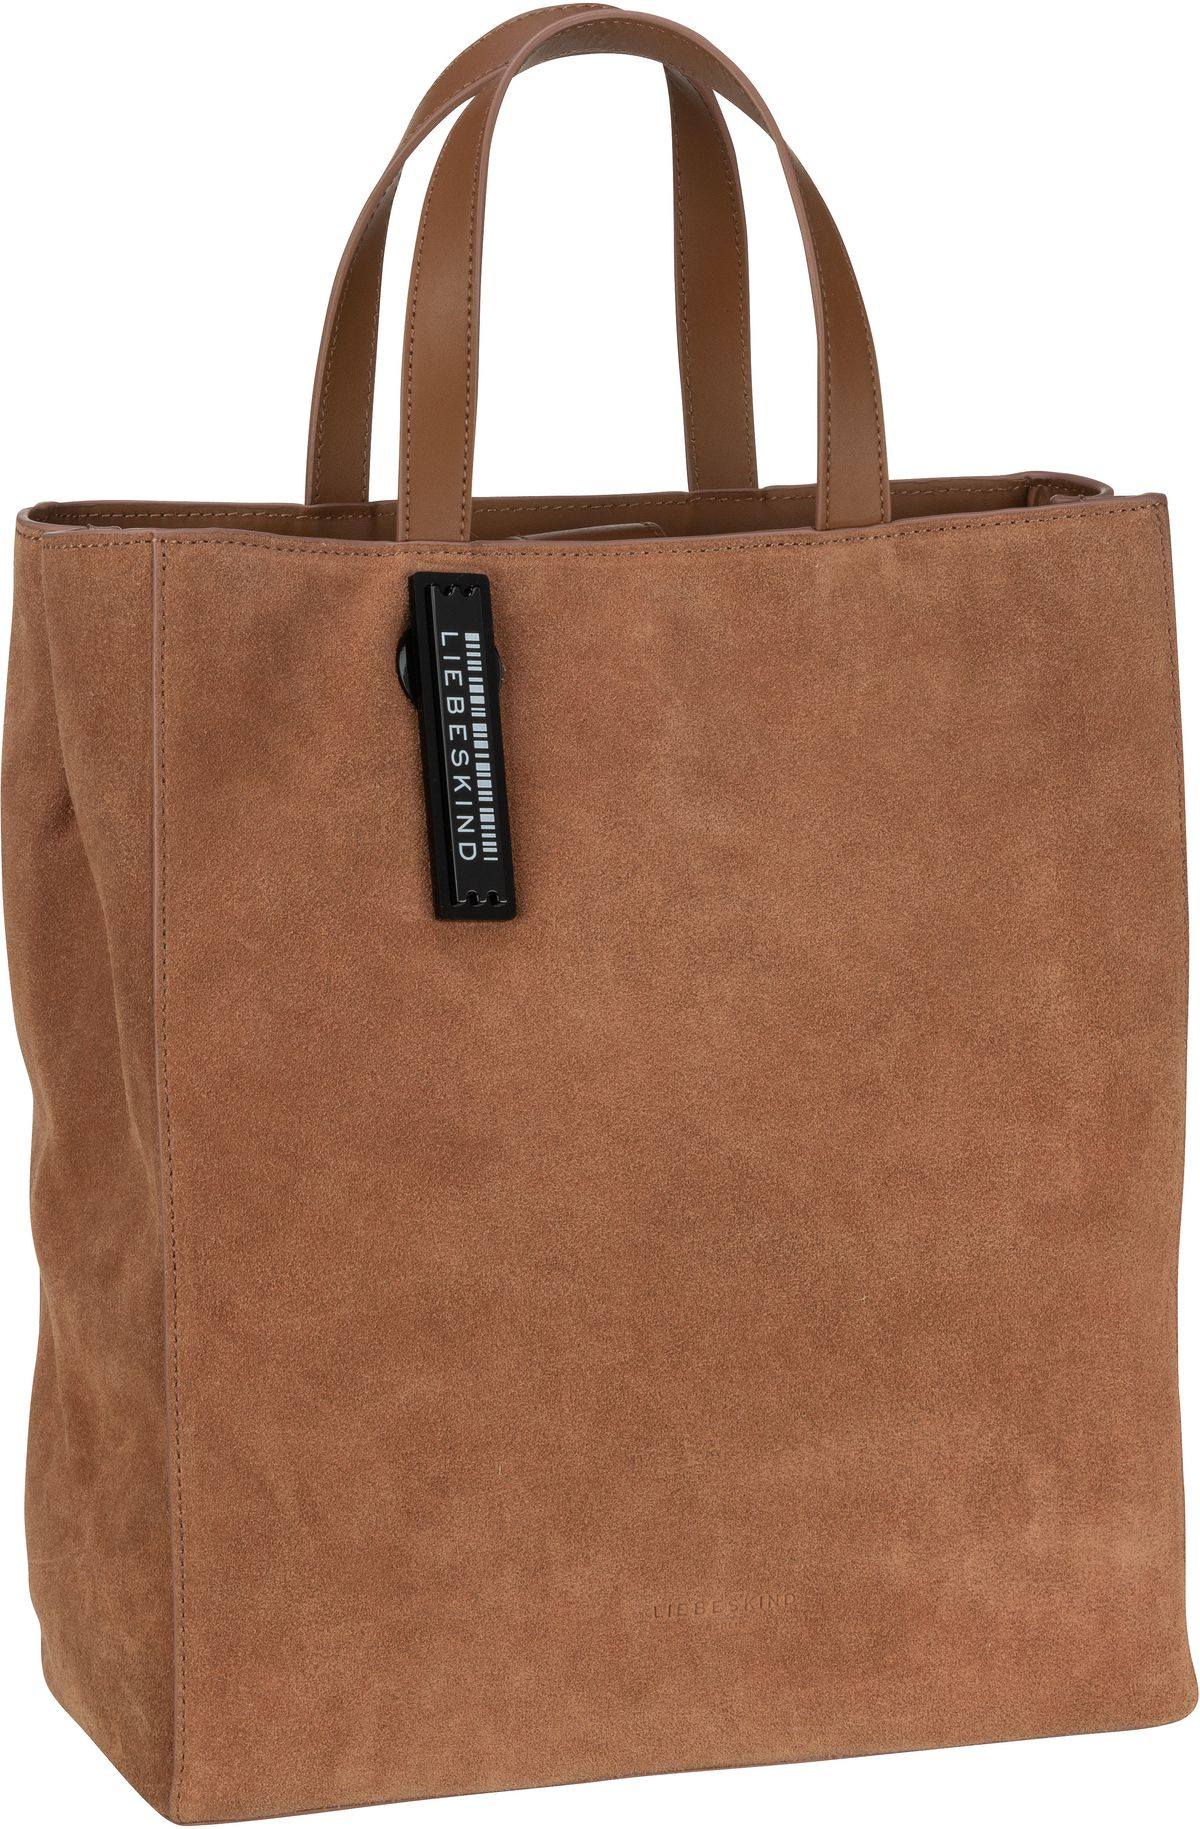 Berlin Shopper Paper Bag M Suede Caramel